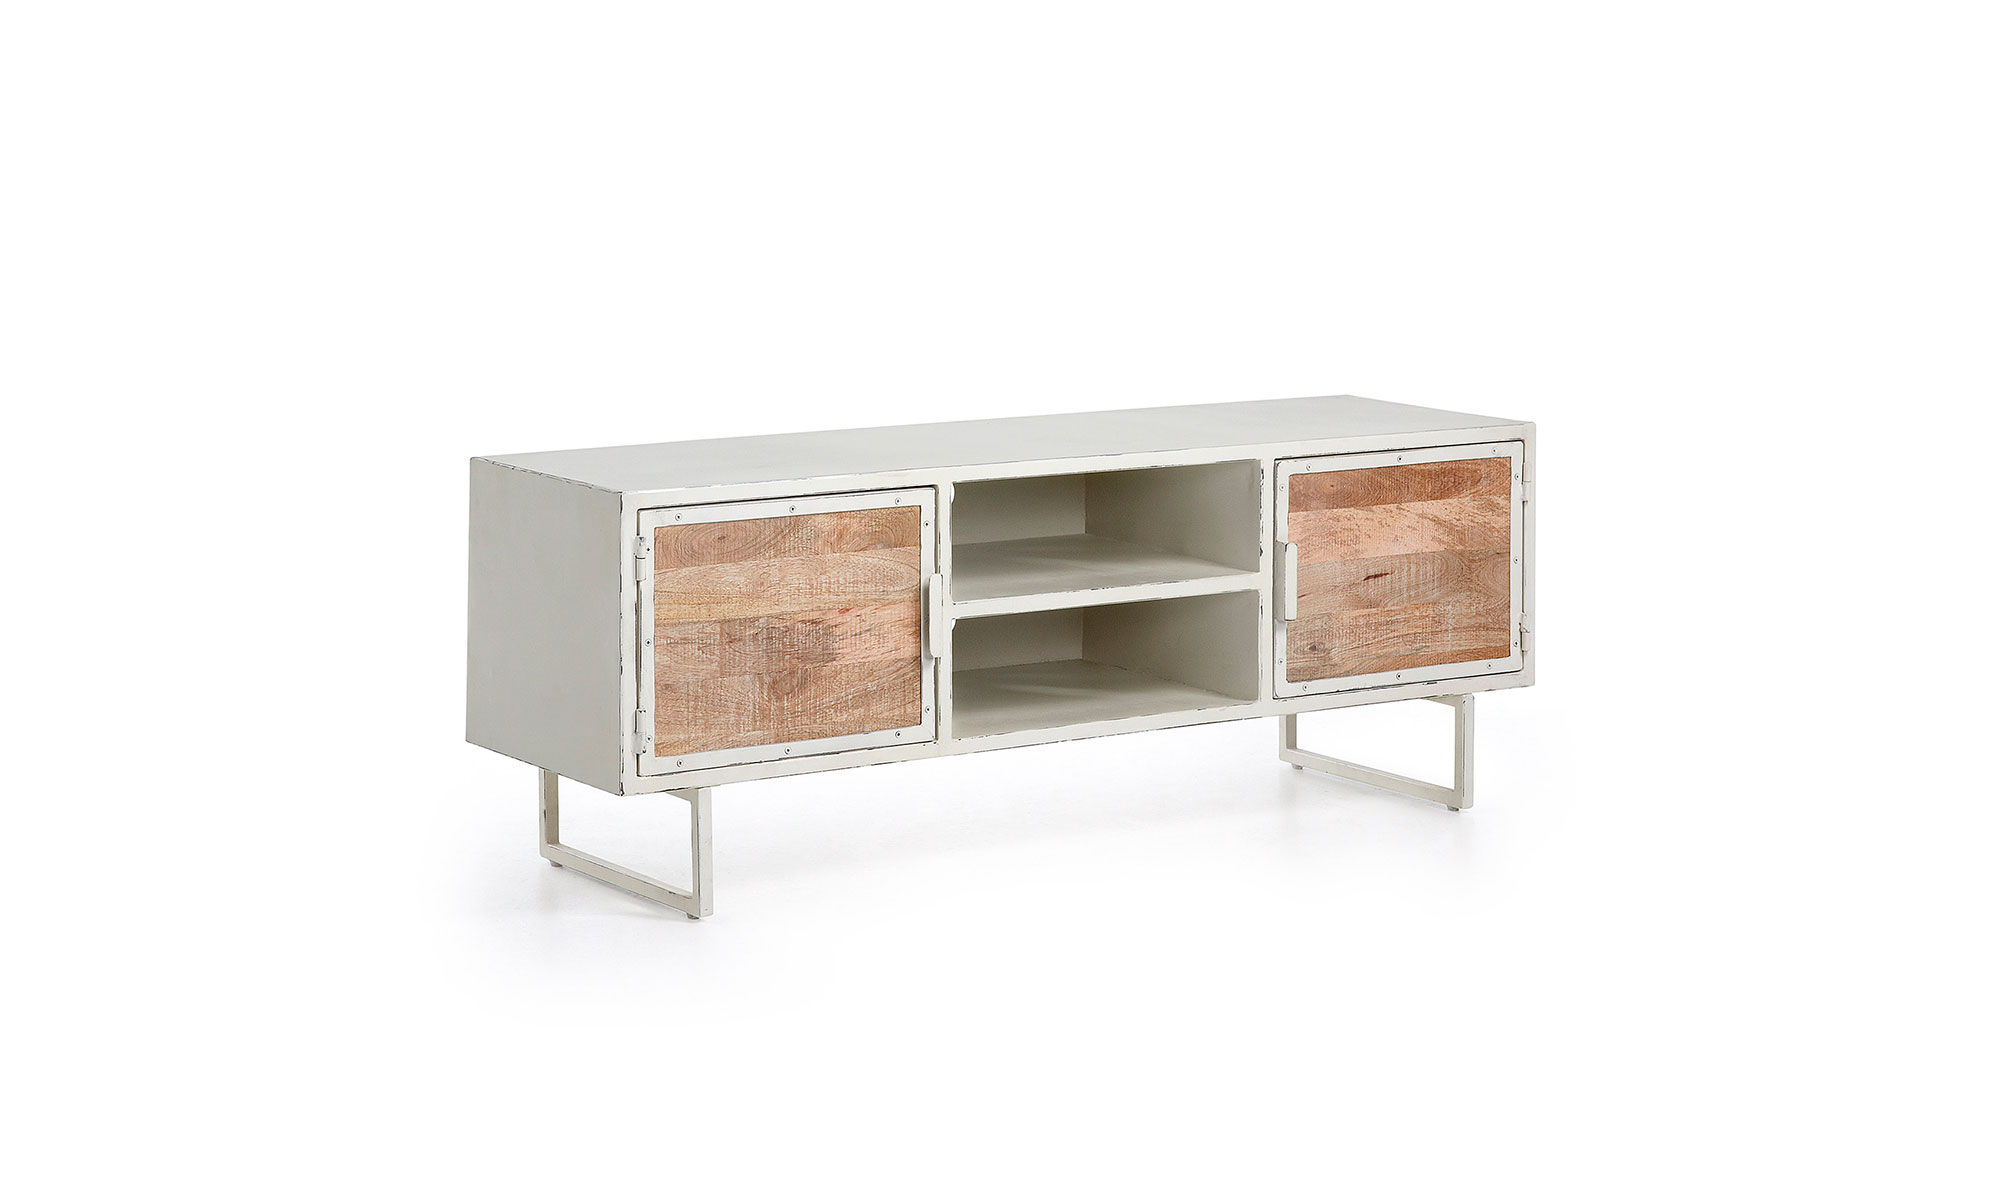 Mueble tv industrial loops en - Portobello madrid muebles ...